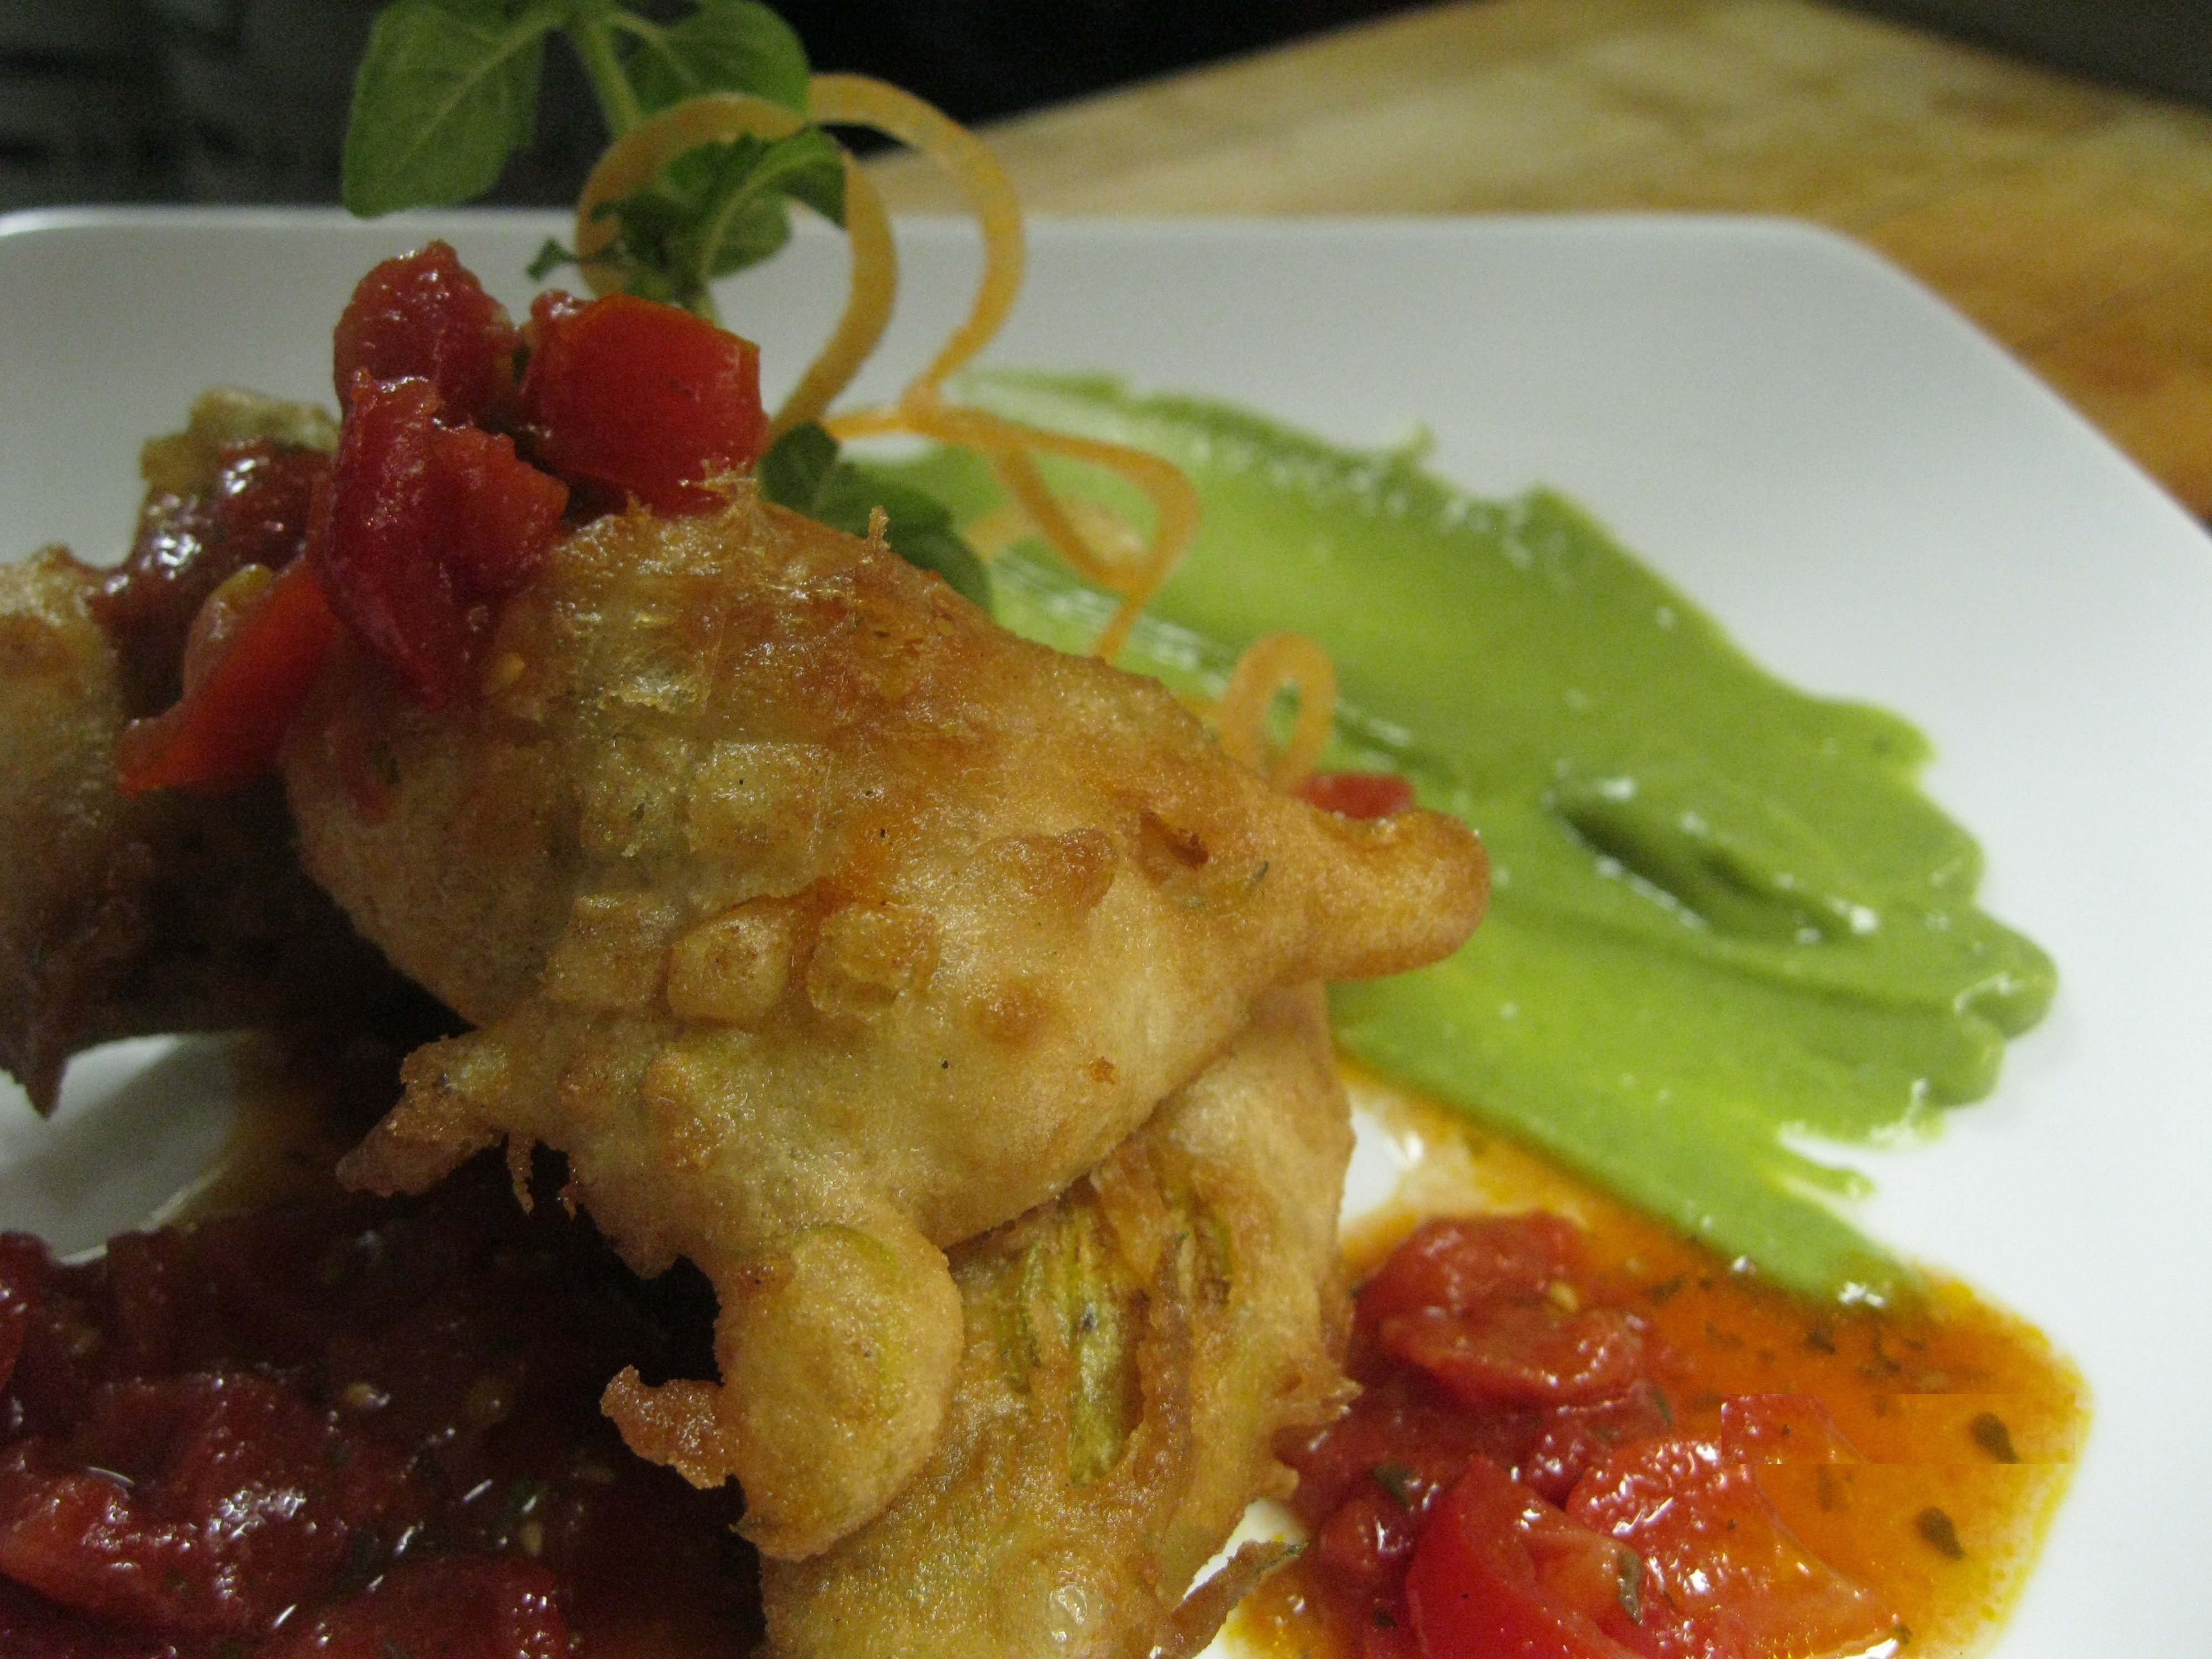 crab stuffed  zucchini blossom with an avocado coulis and heirloom tomato concasse